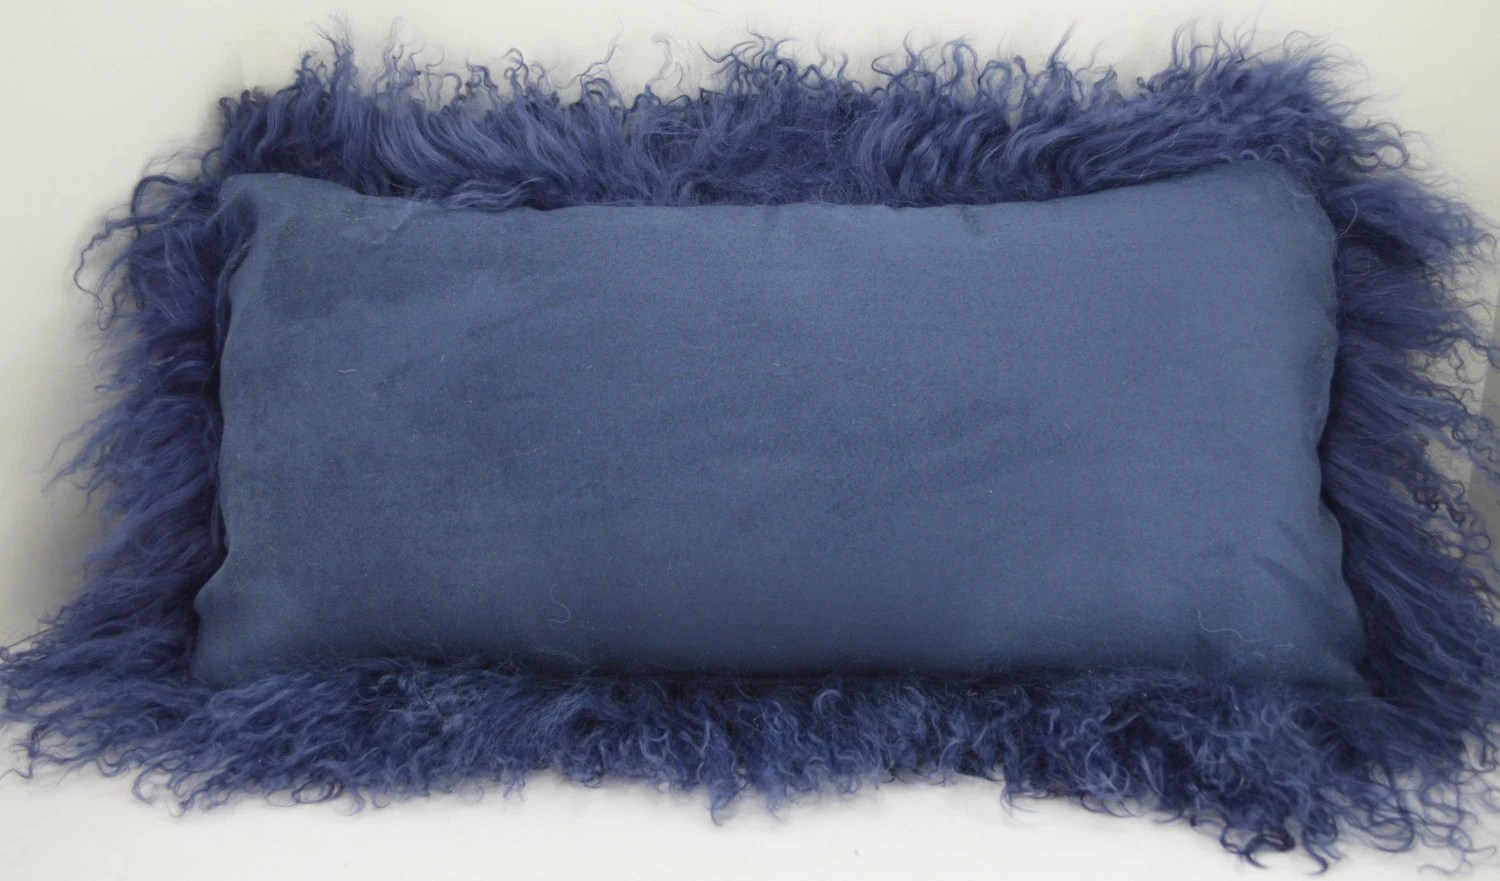 mongolian tibetan tibet lamb fur navy blue pillow new made in usa authentic genuine real cushion insert included